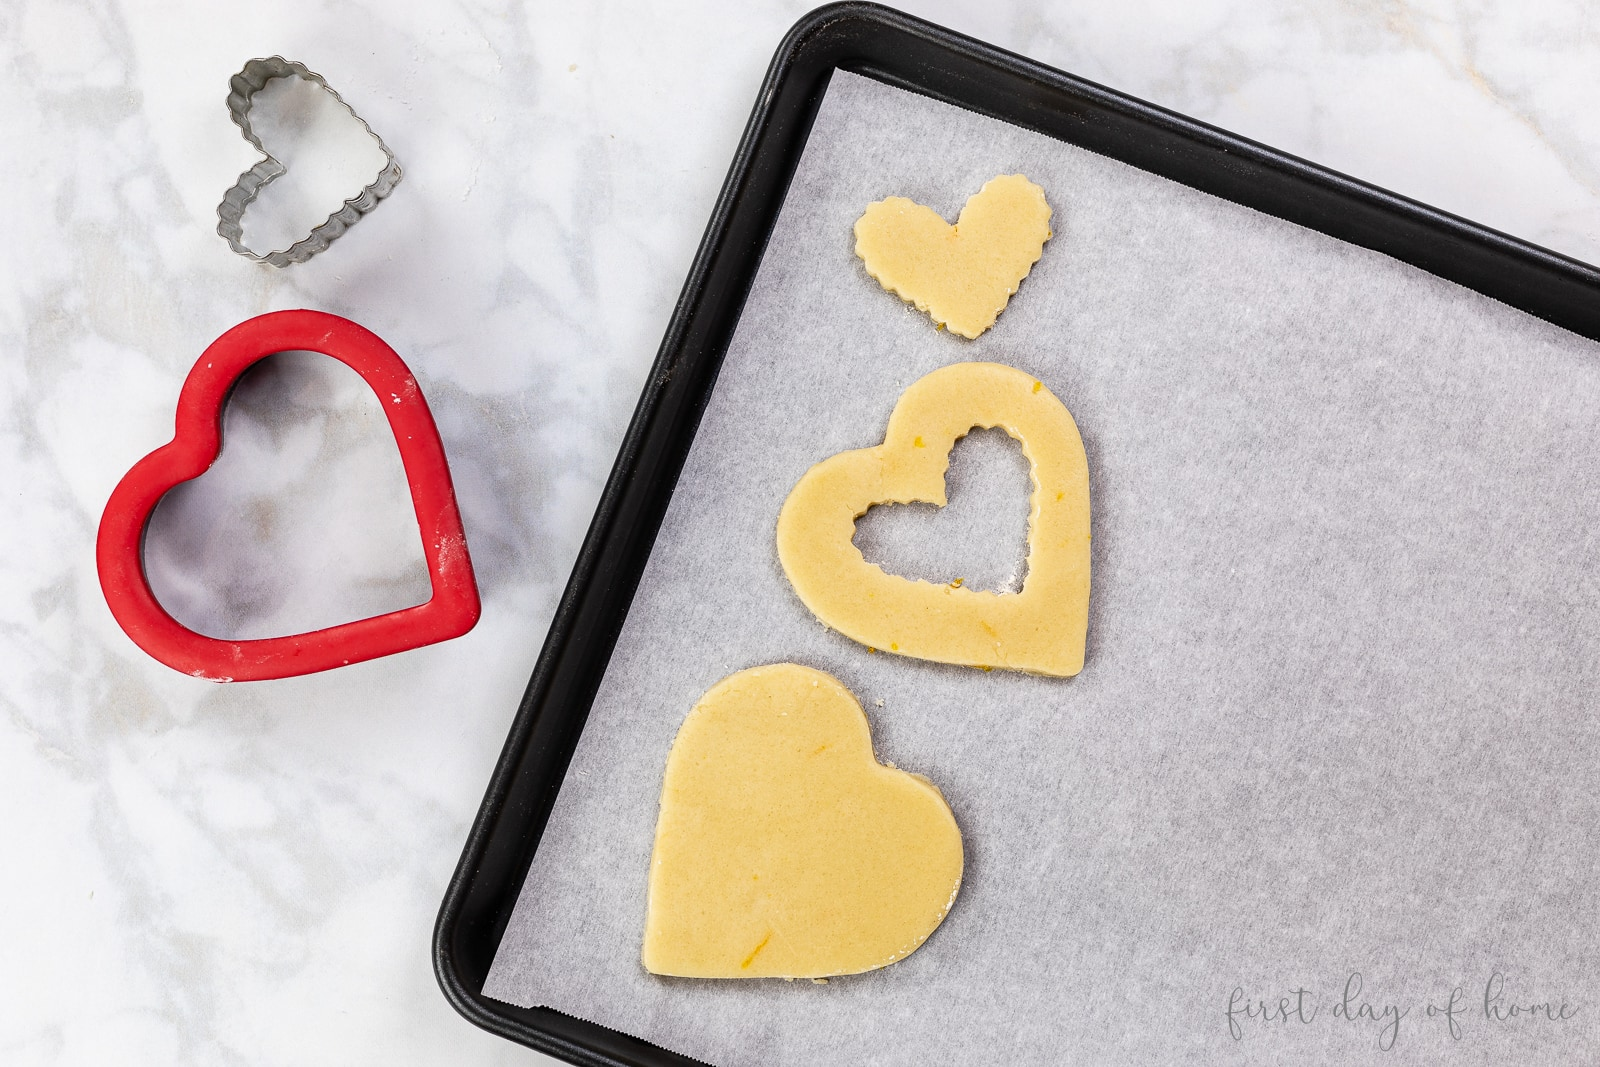 Heart shaped cookie shapes before baking with heart cookie cutters on counter